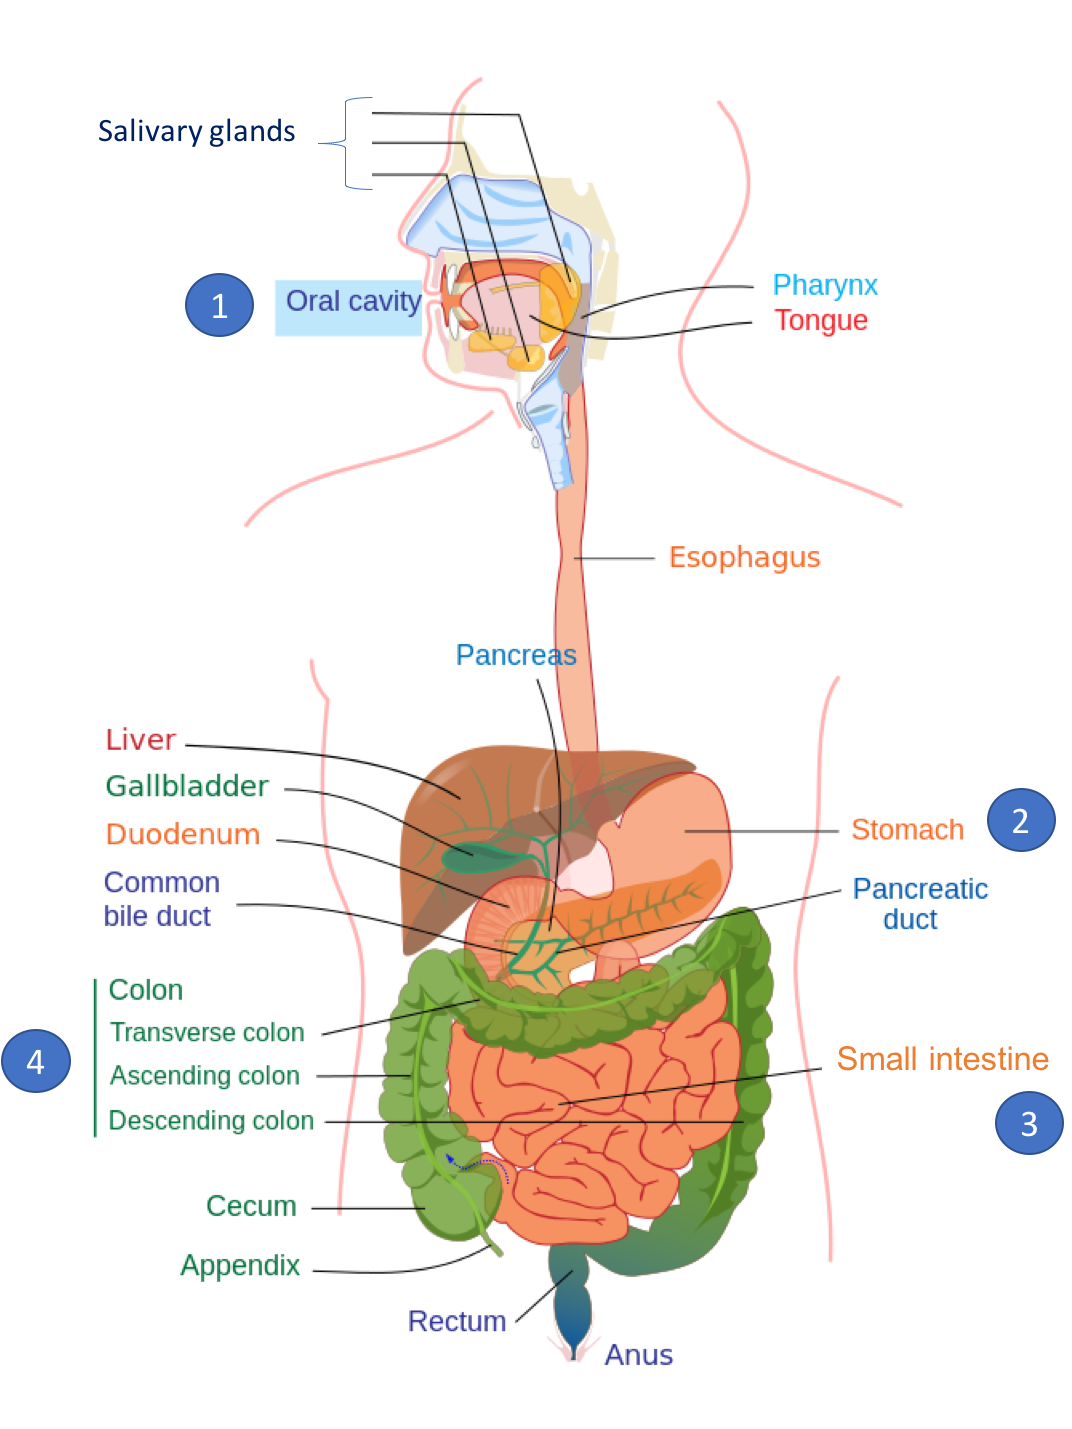 Illustration of the digestive system, with major sites of digestion numbered: oral cavity (1); stomach (2); small intestine (3); and large intestine or colon (4).